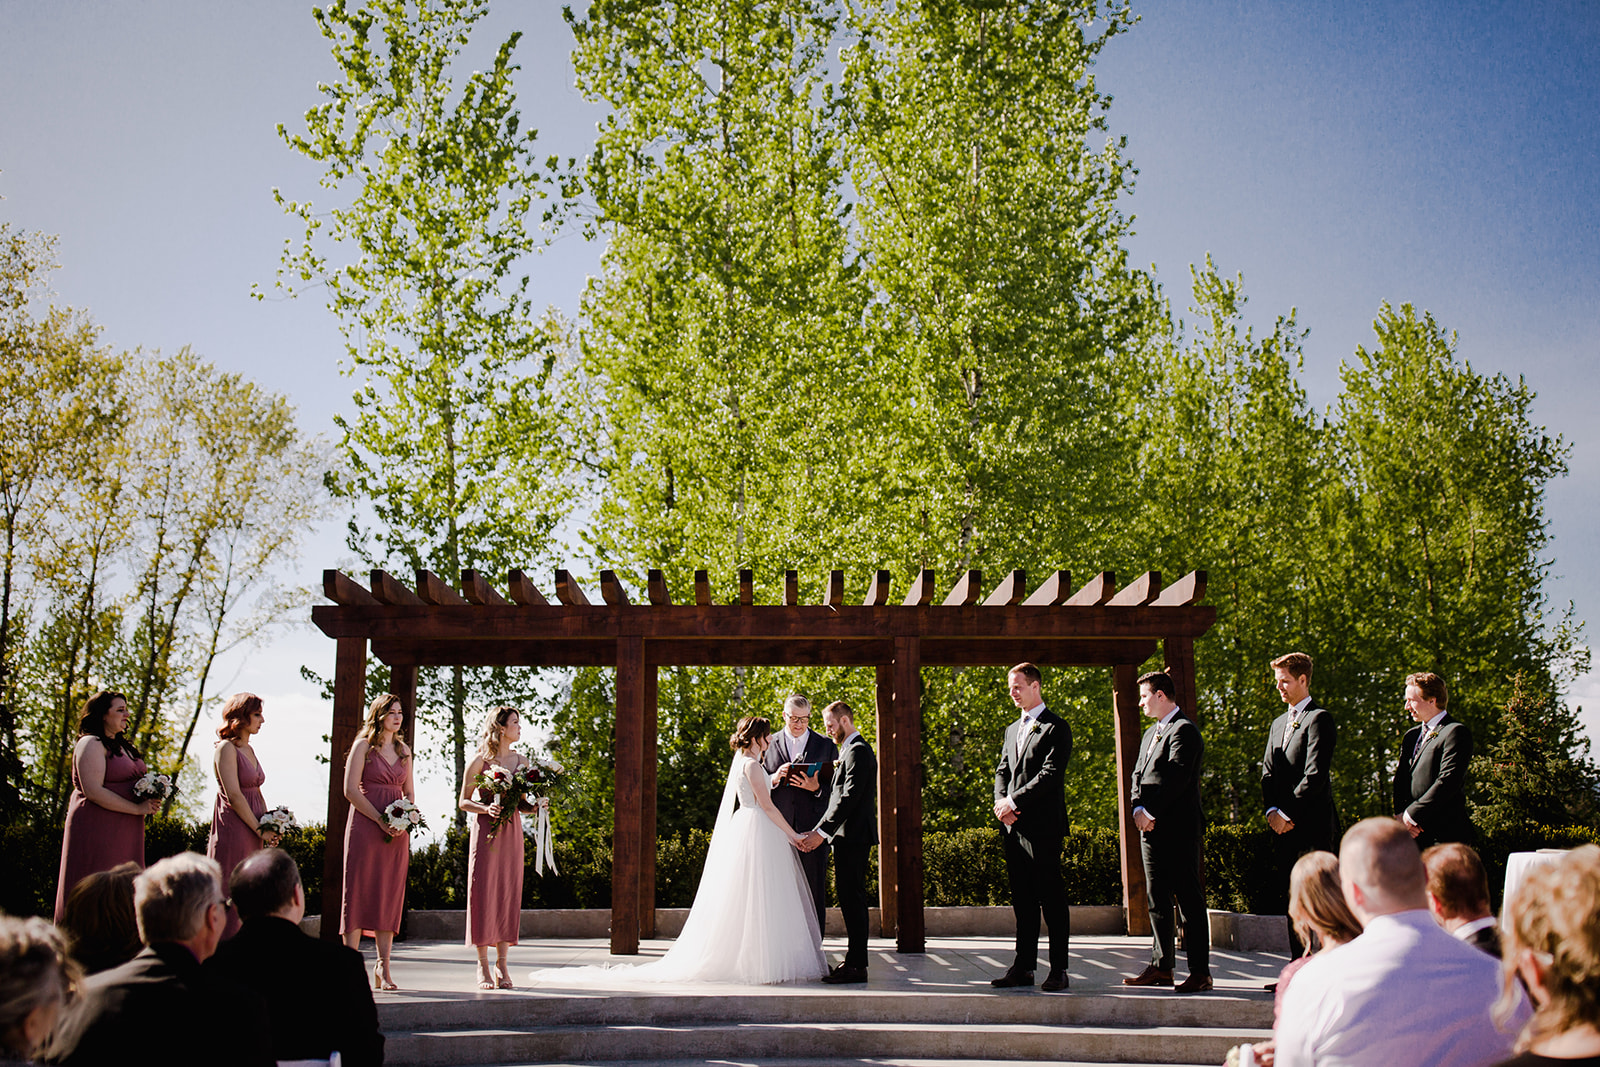 outdoor wedding shoots.jpg